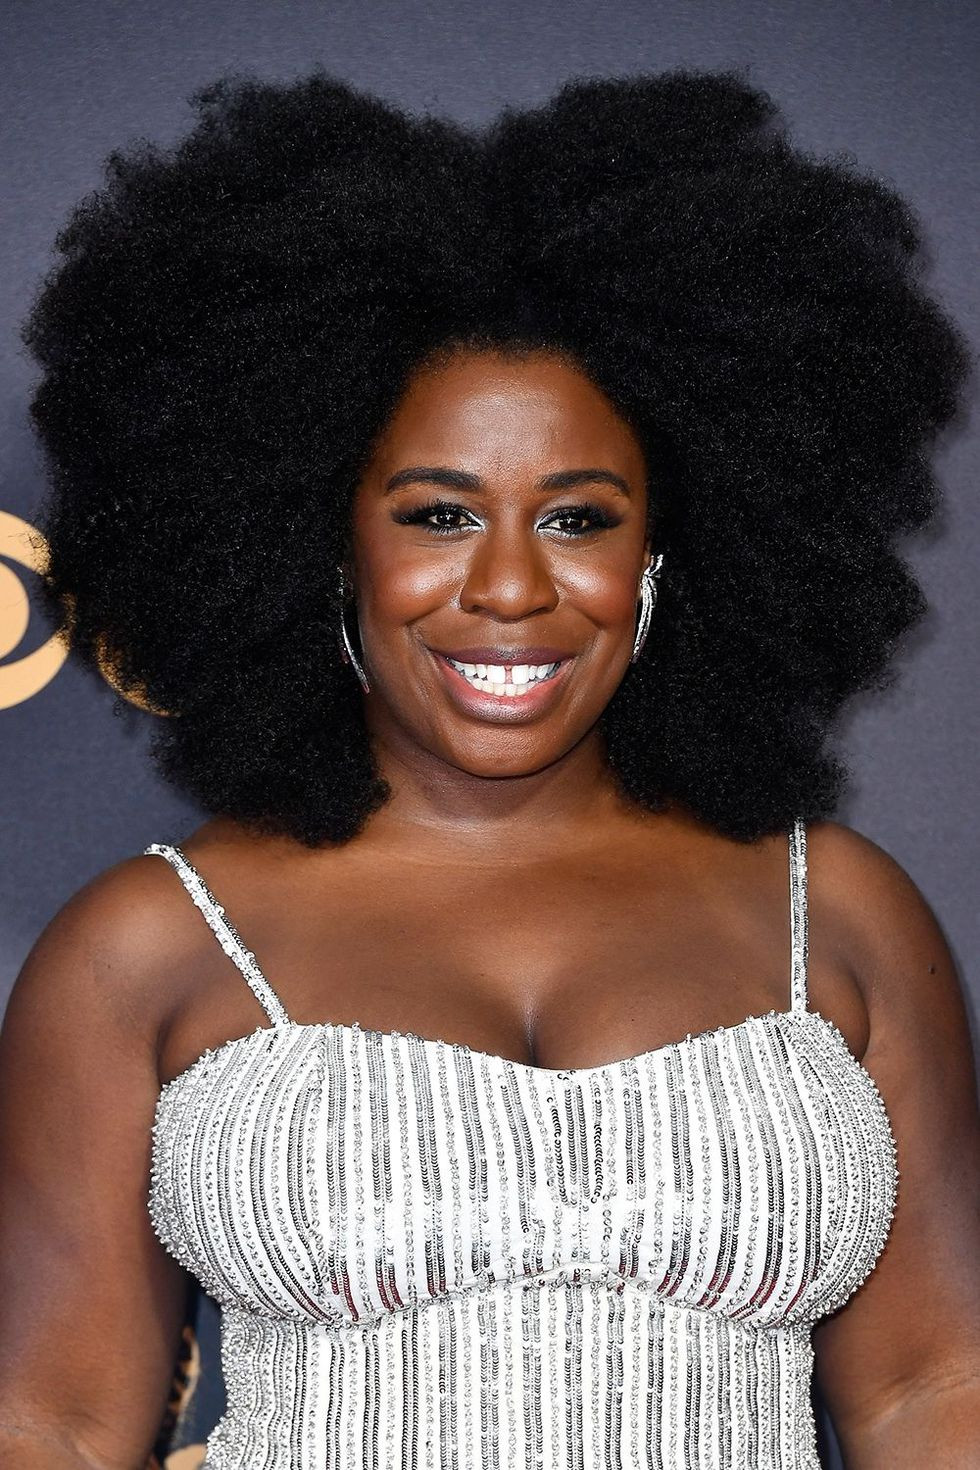 hbz-the-list-best-beauty-looks-of-the-year-uzo-aduba-gettyimages-848651808-1512514120.jpg